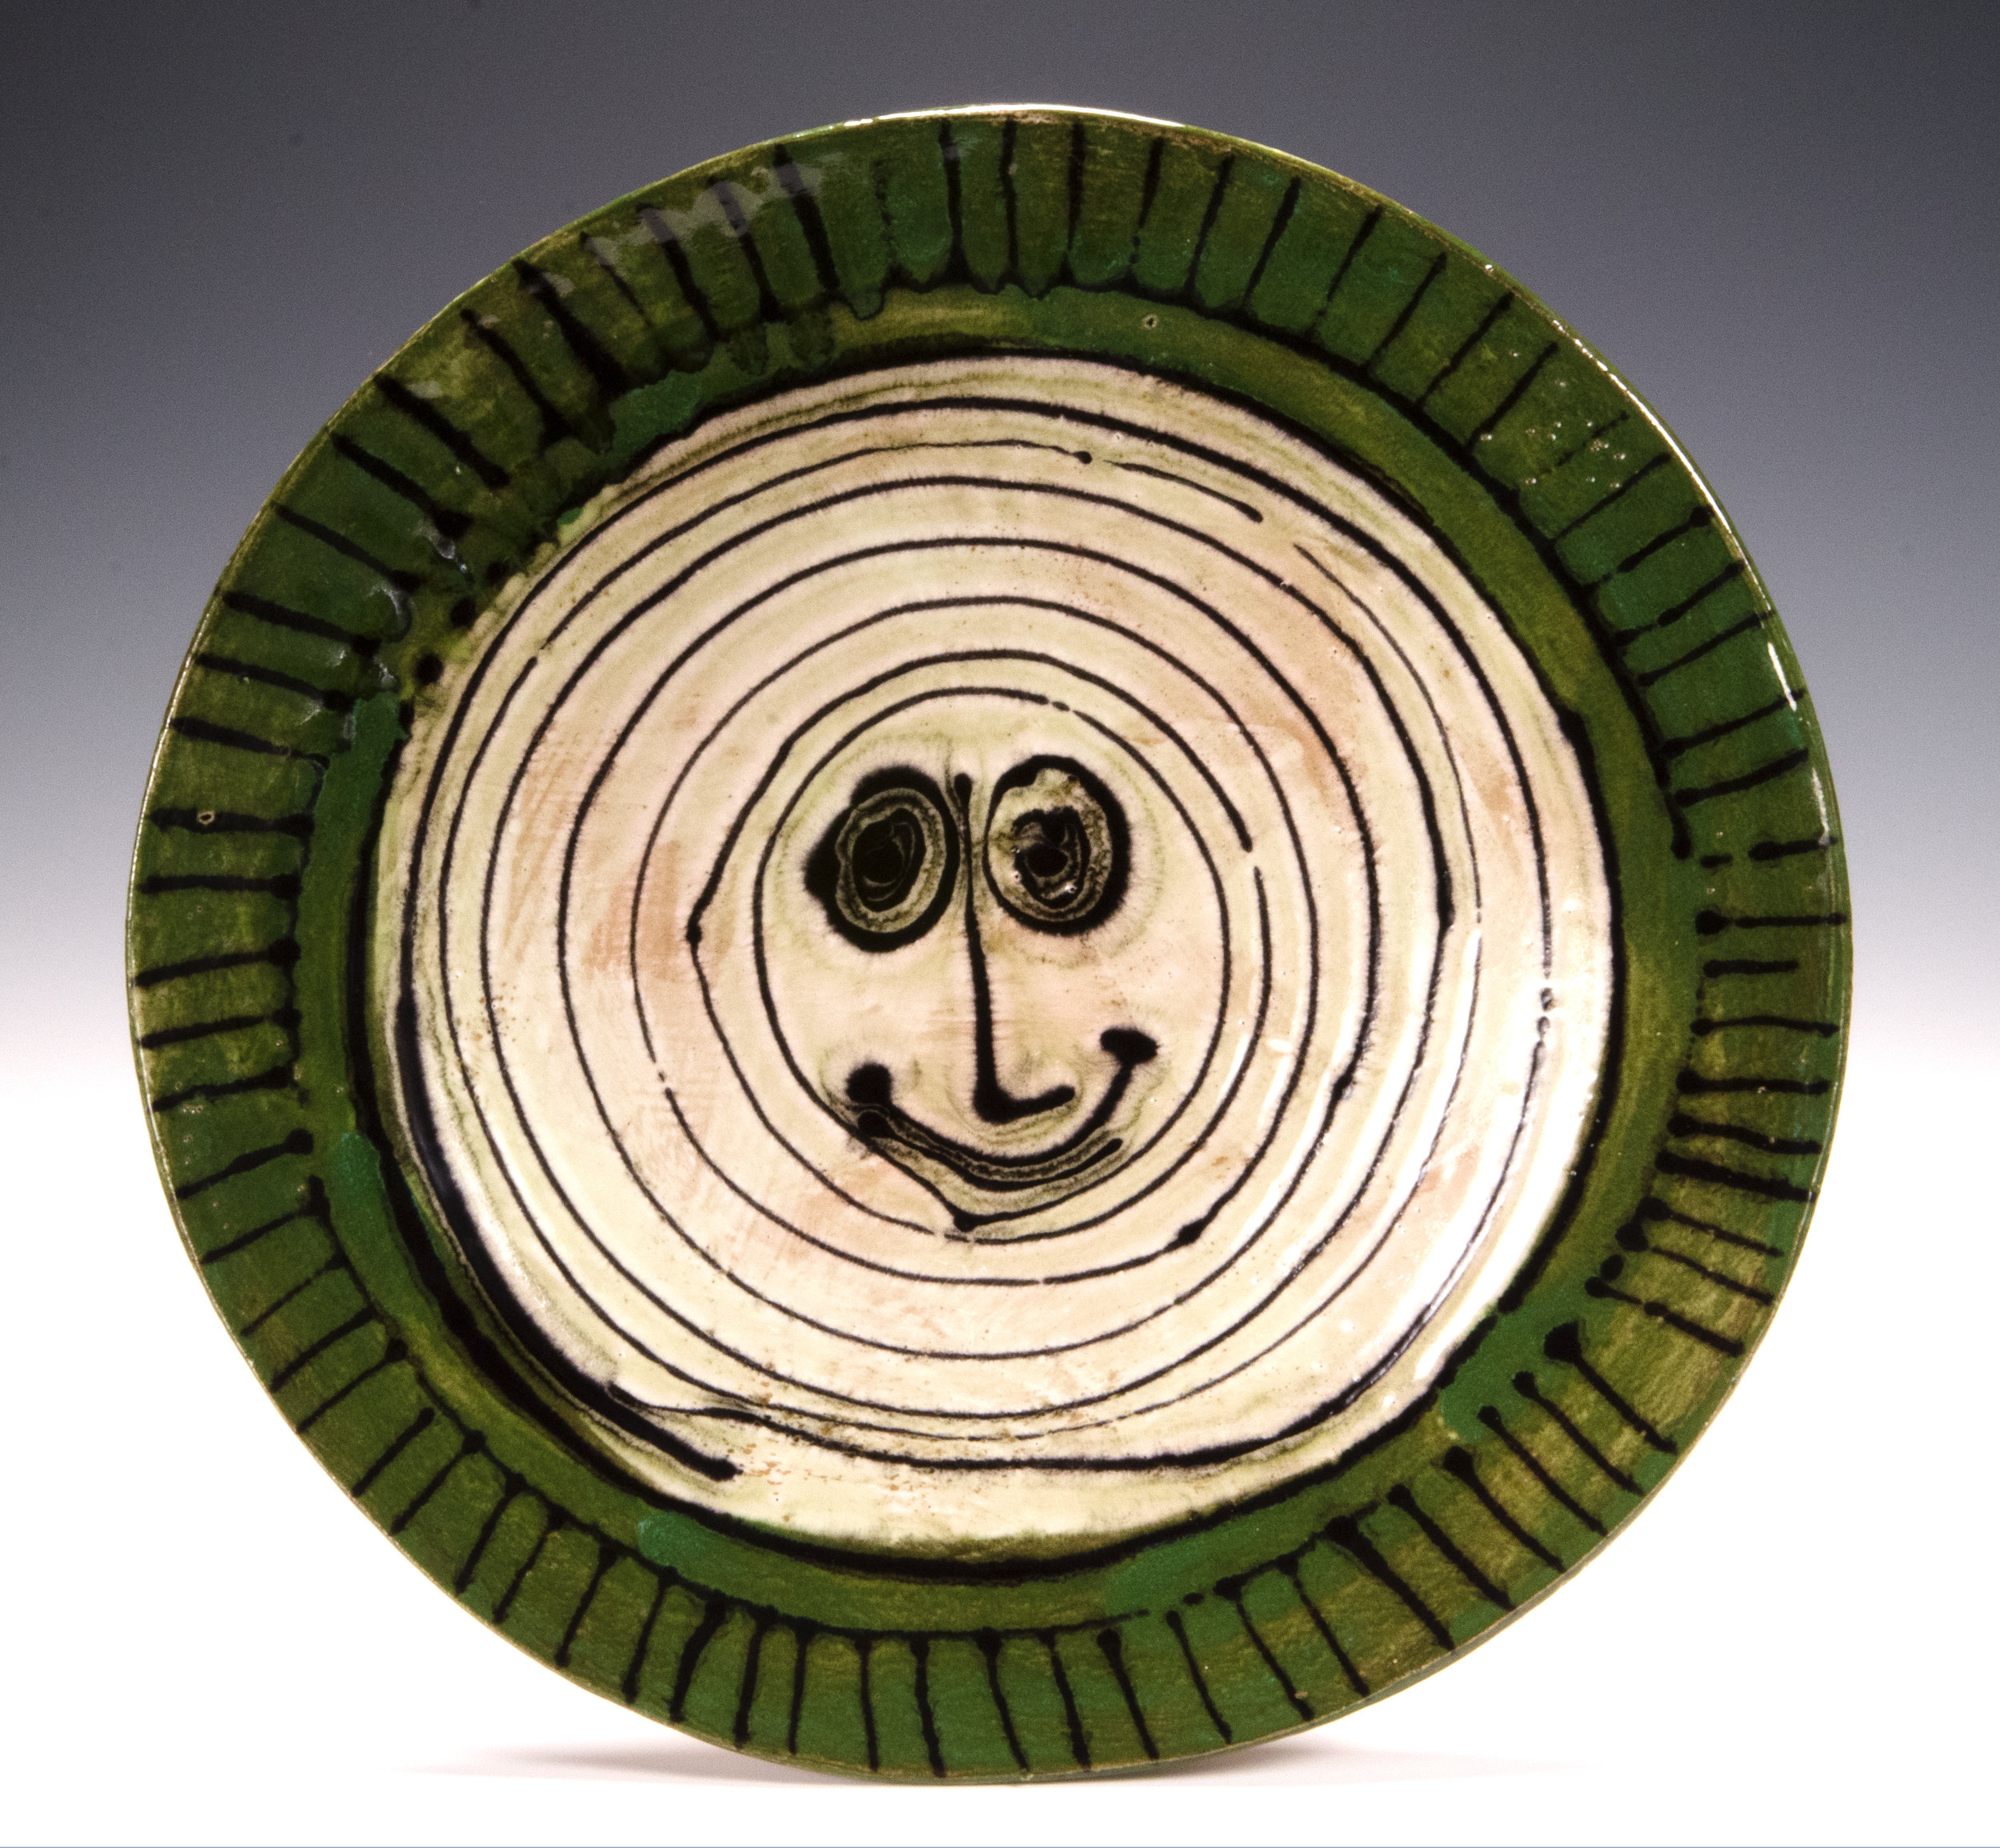 Charger Aug 2016, slab made, stoneware, slip, glaze stain, 12.5 incehes